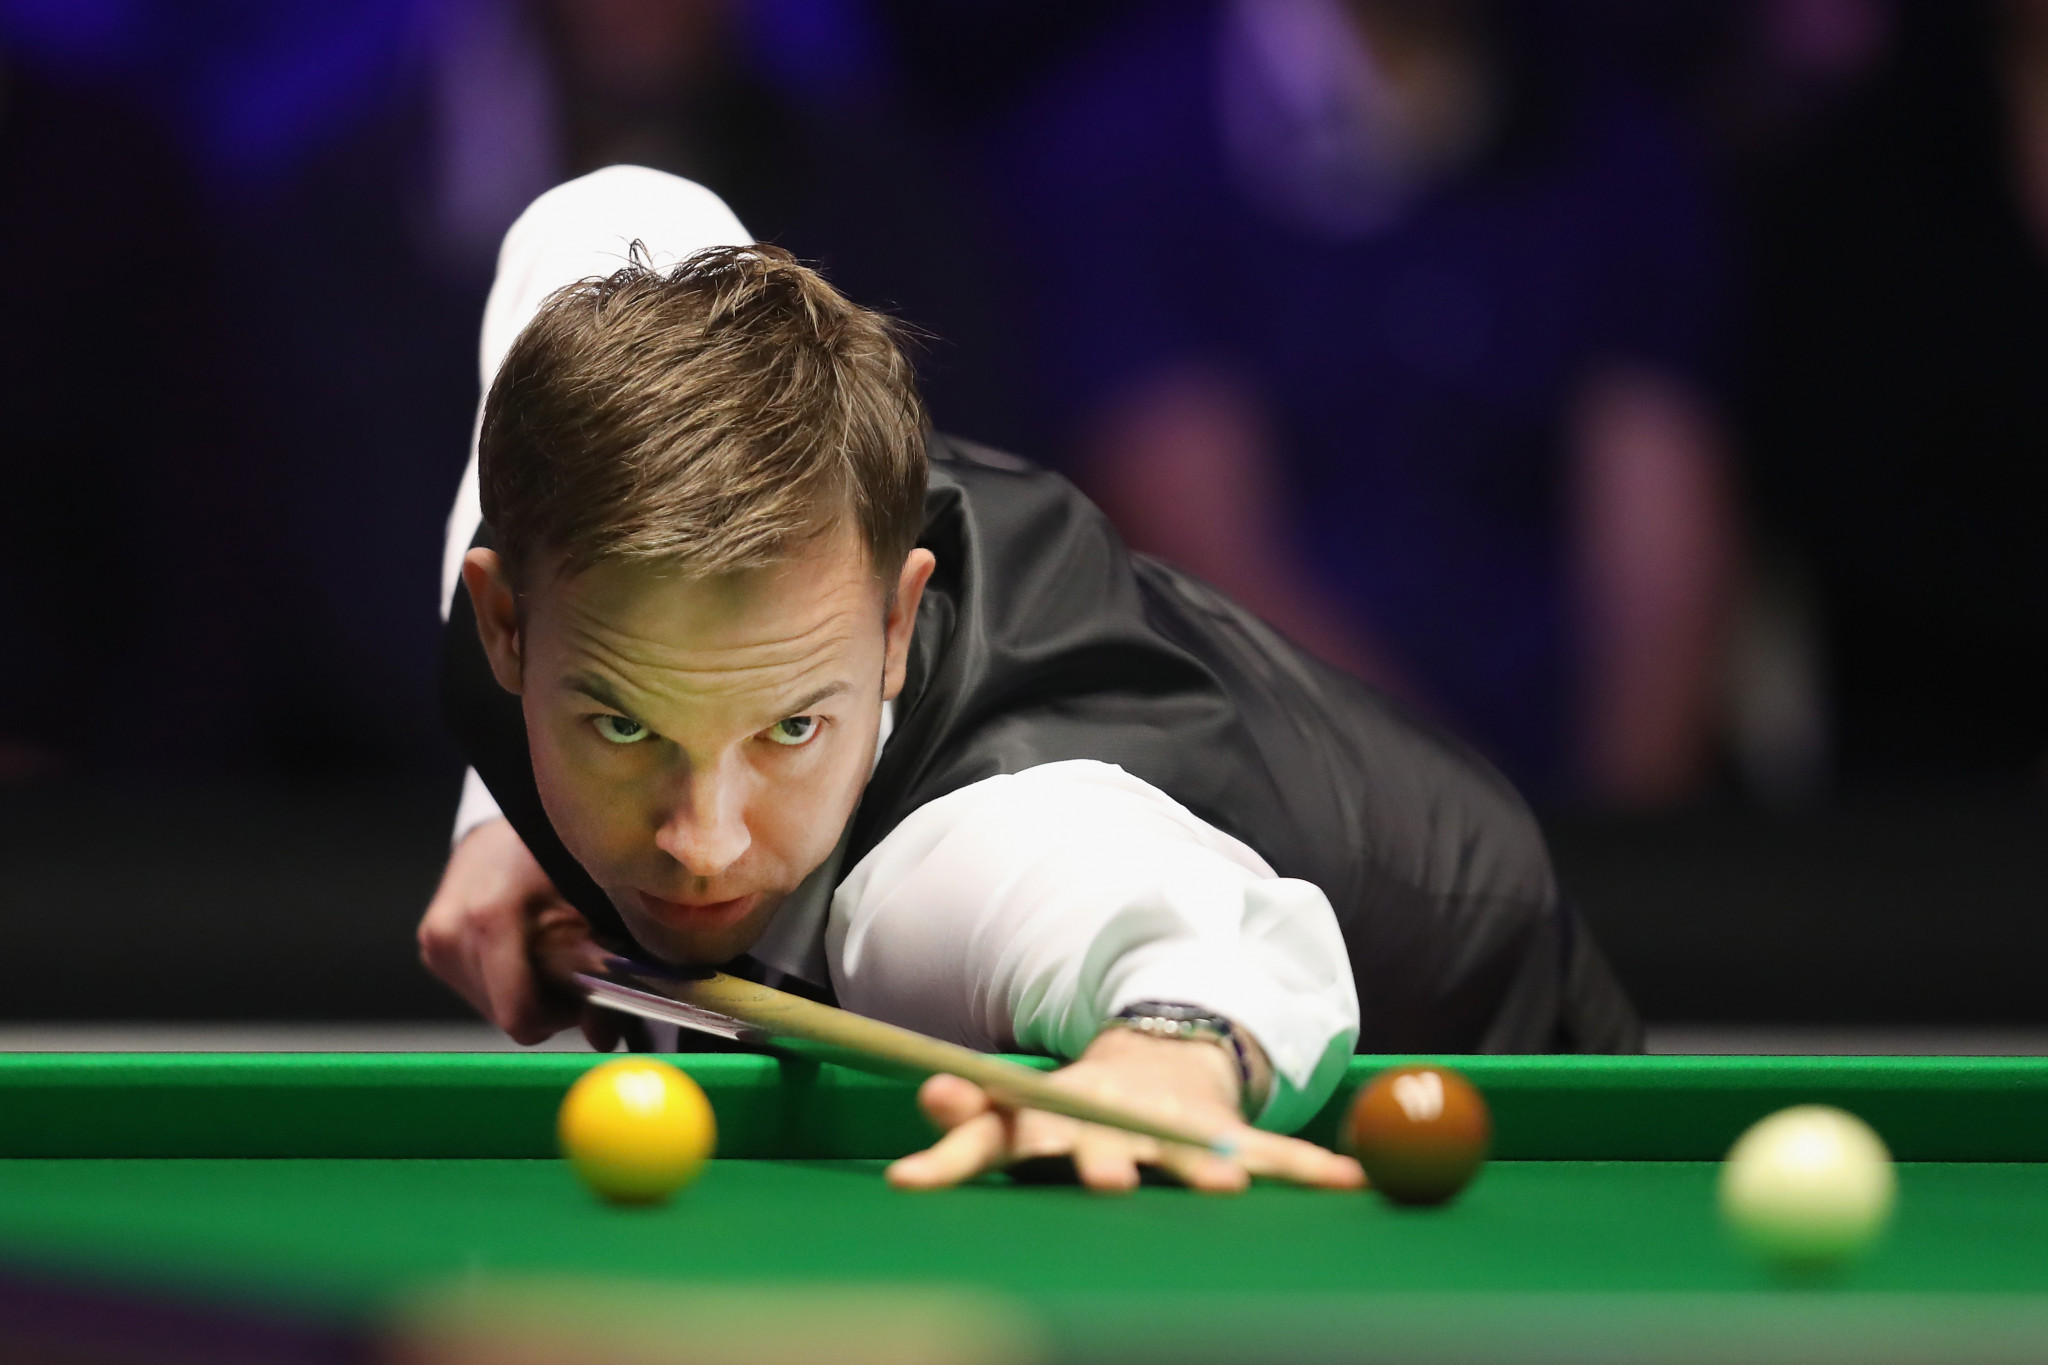 Carter leads O'Sullivan in second round of World Snooker Championships